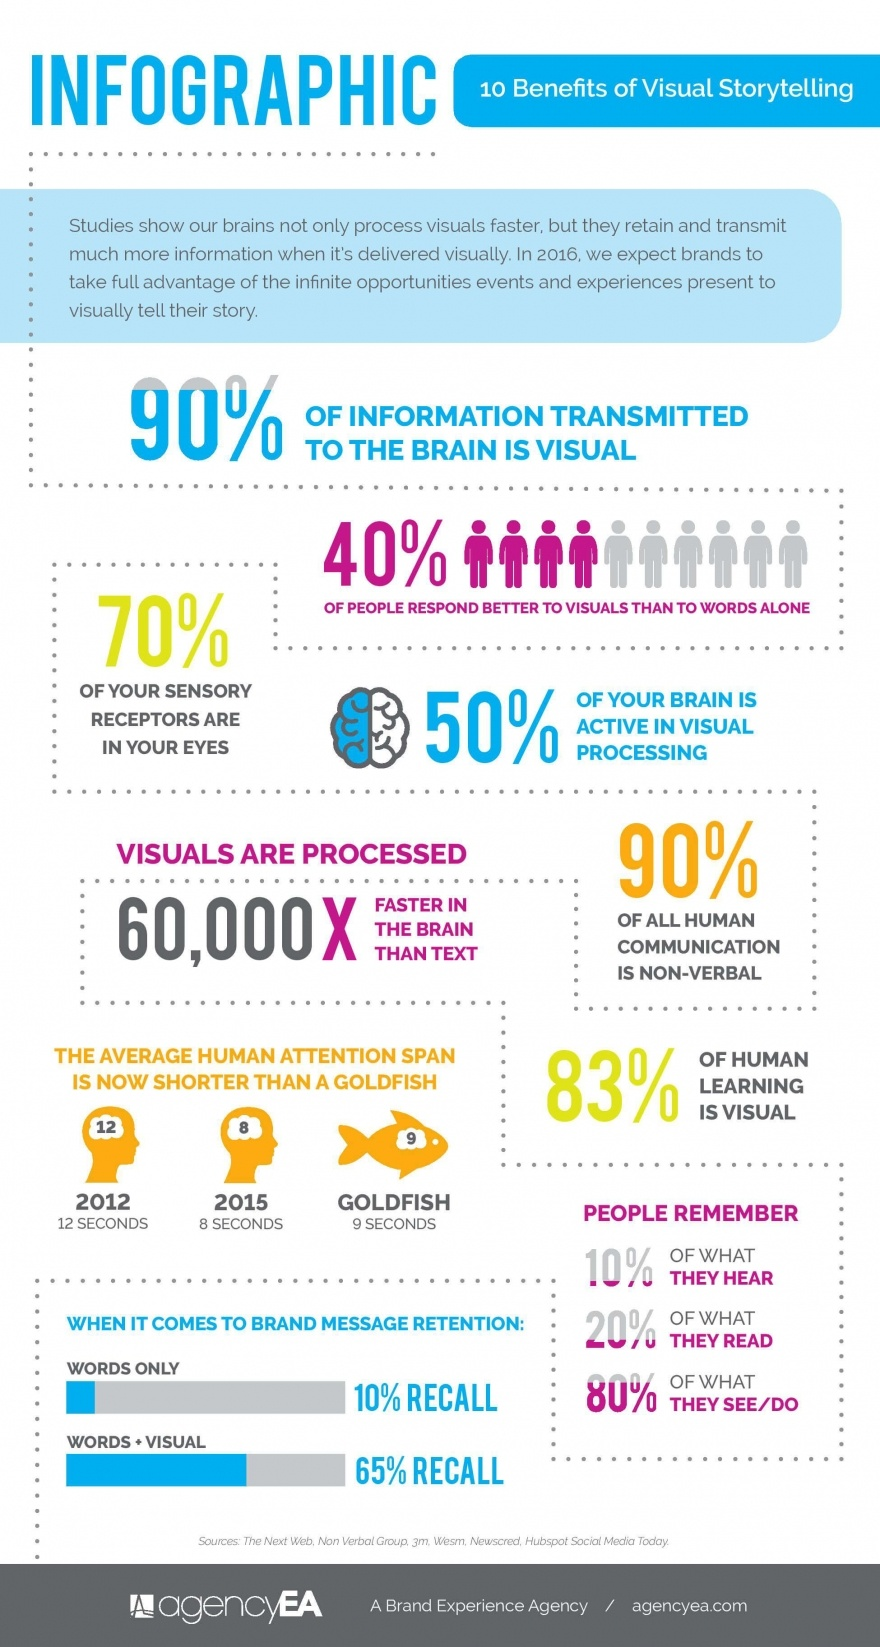 10-benefits-of-visual-storytelling_infographic_1.jpg